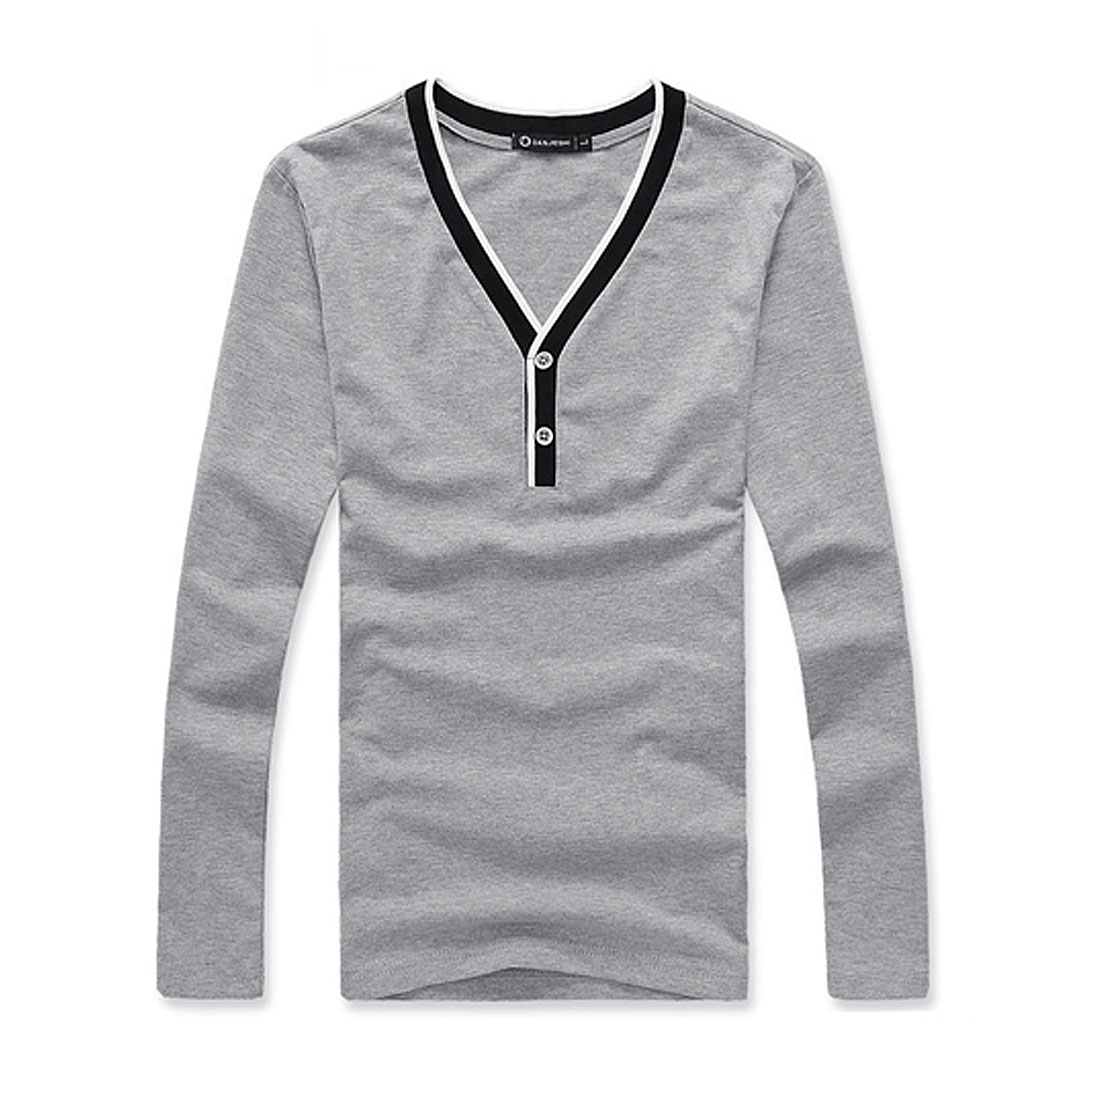 Men V Neck Long Sleeve Ribbing Detail Pullover Light Gray Shirt S